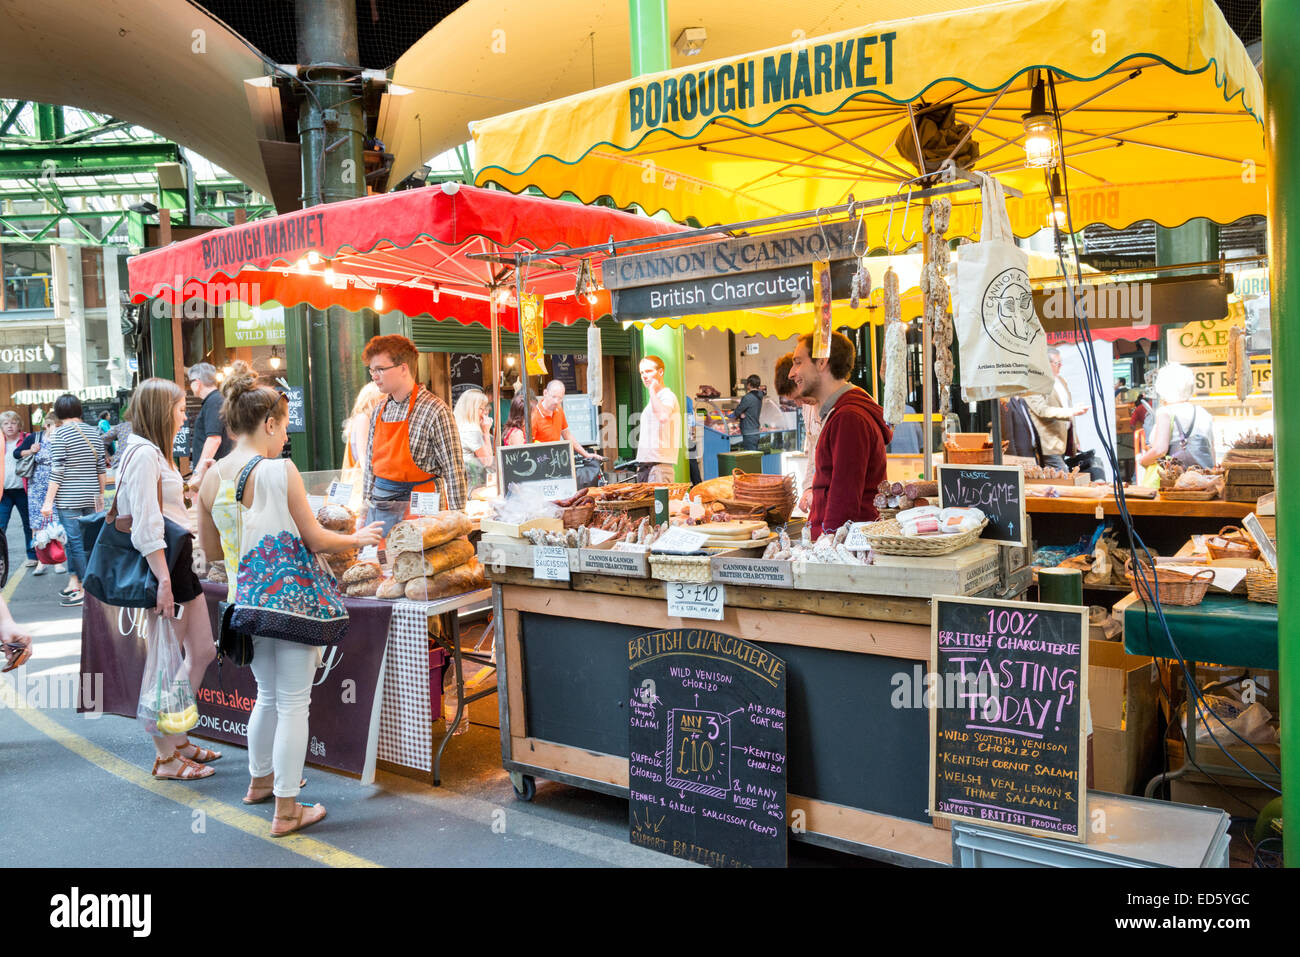 Borough Market stalls, London, England, UK - Stock Image